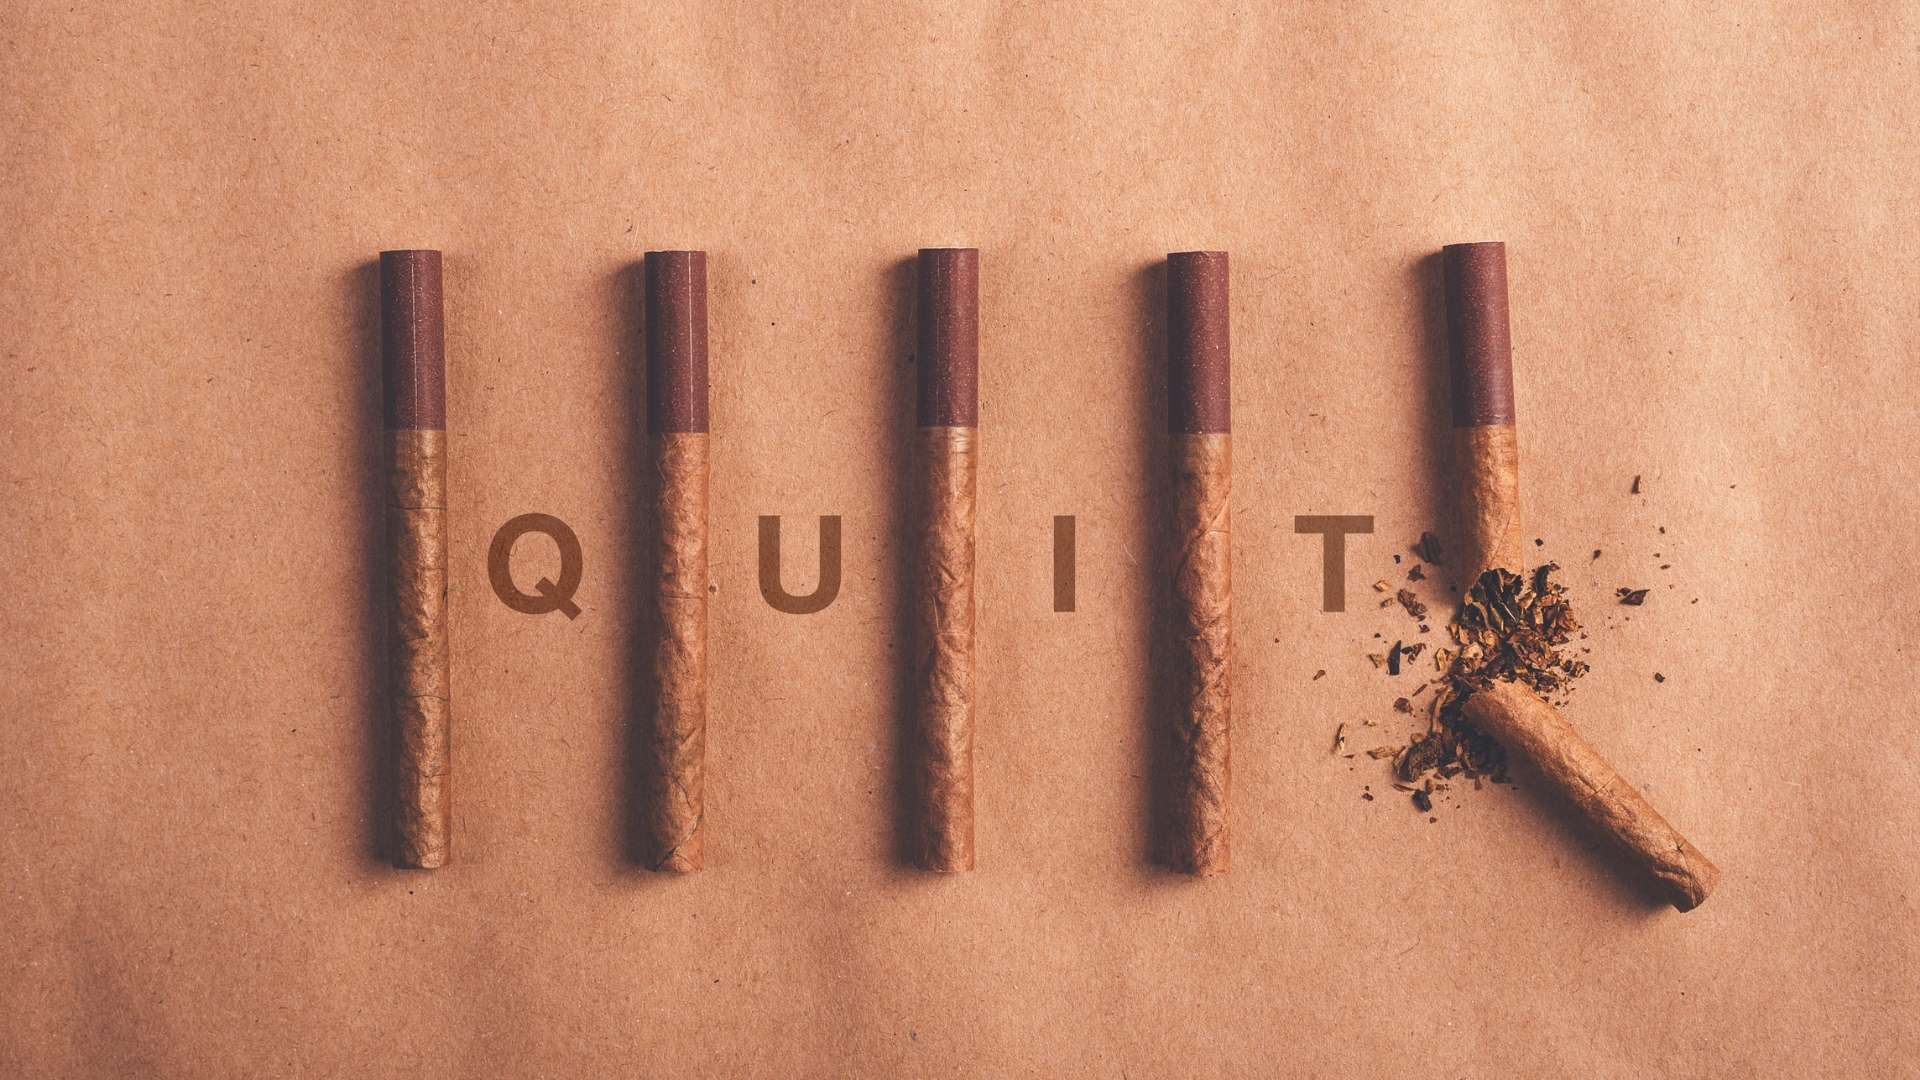 Cigarettes_Row_Quit_Word_1920x1080.jpg